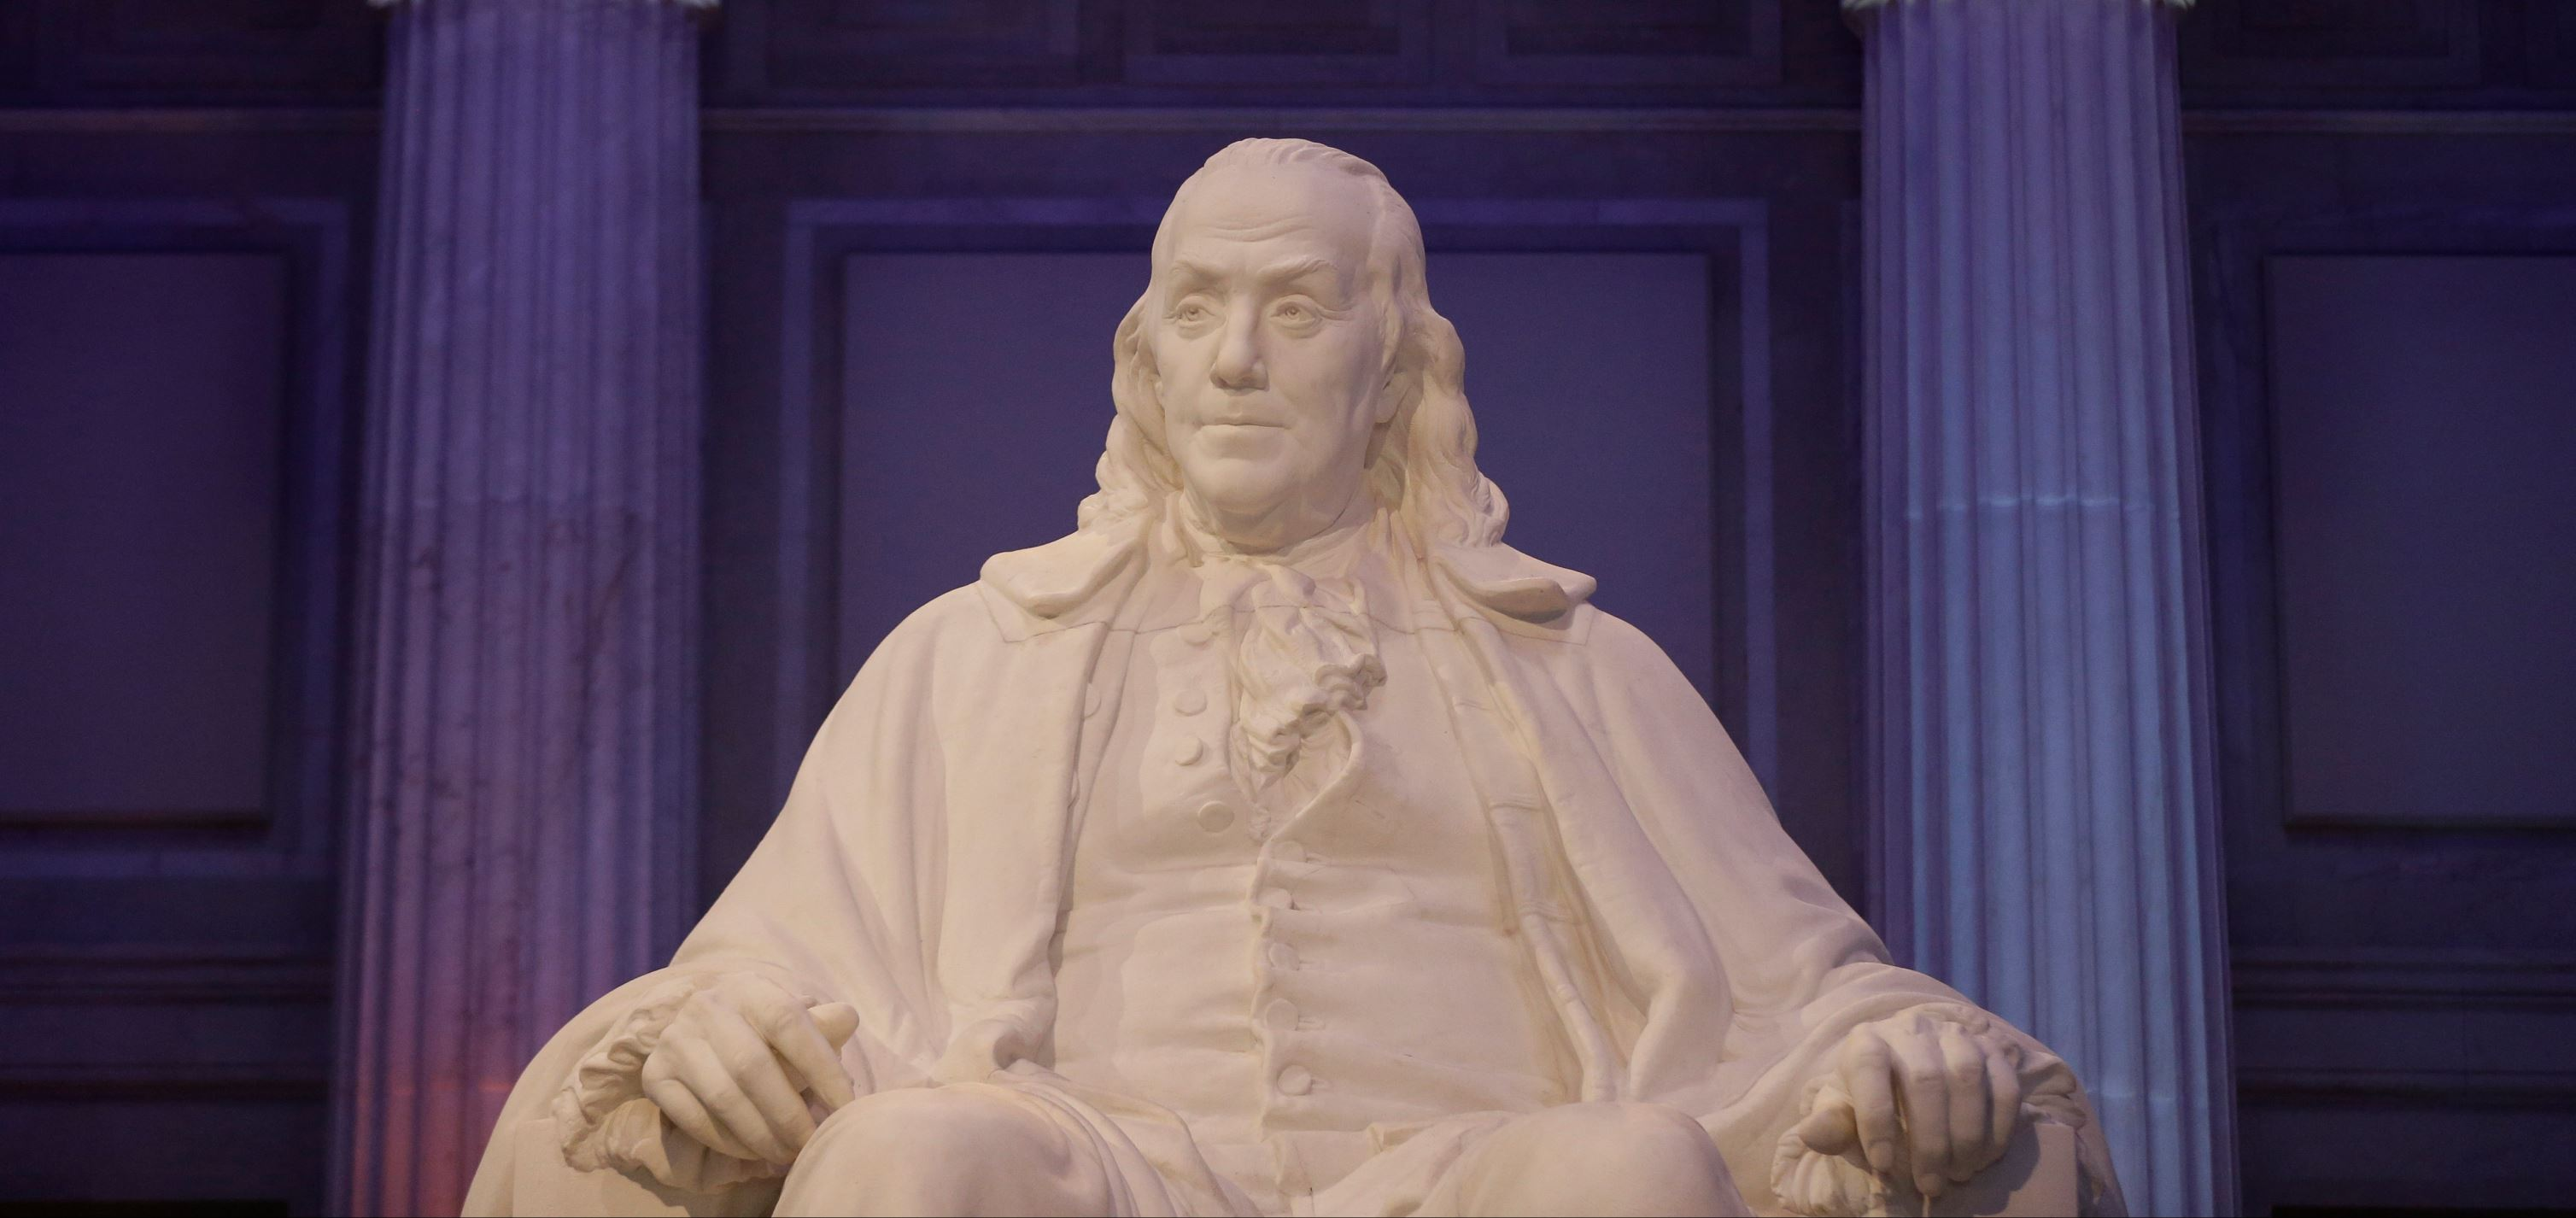 A statue of Benjamin Franklin is seen at The Franklin Institute in Philadelphia.